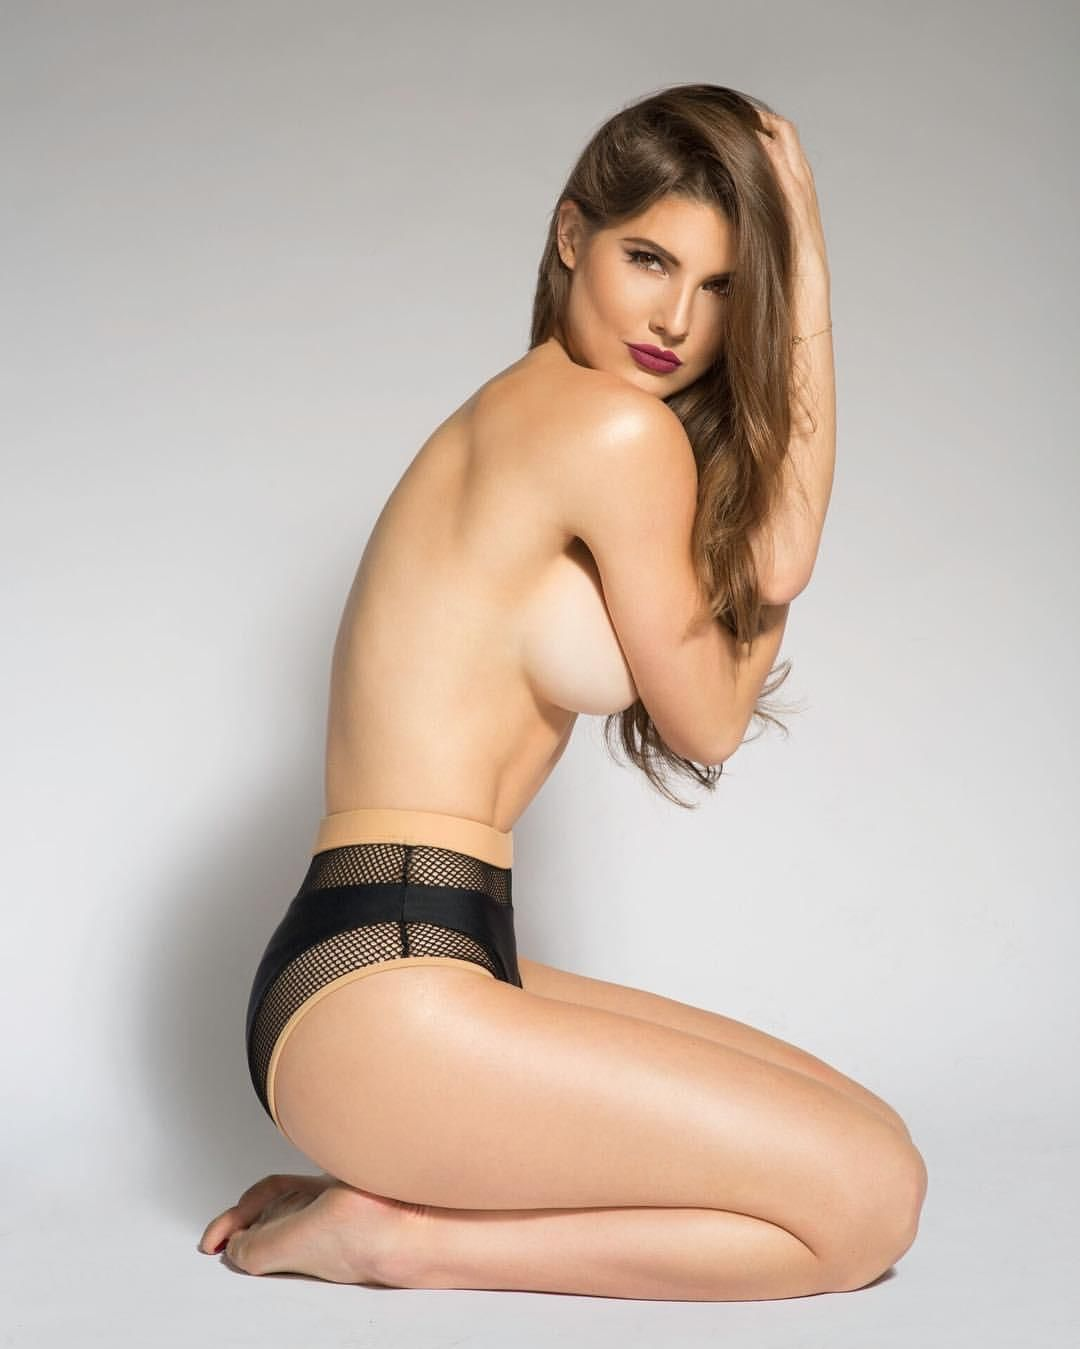 collection of sexy girls from america amanda cerny japanese edition